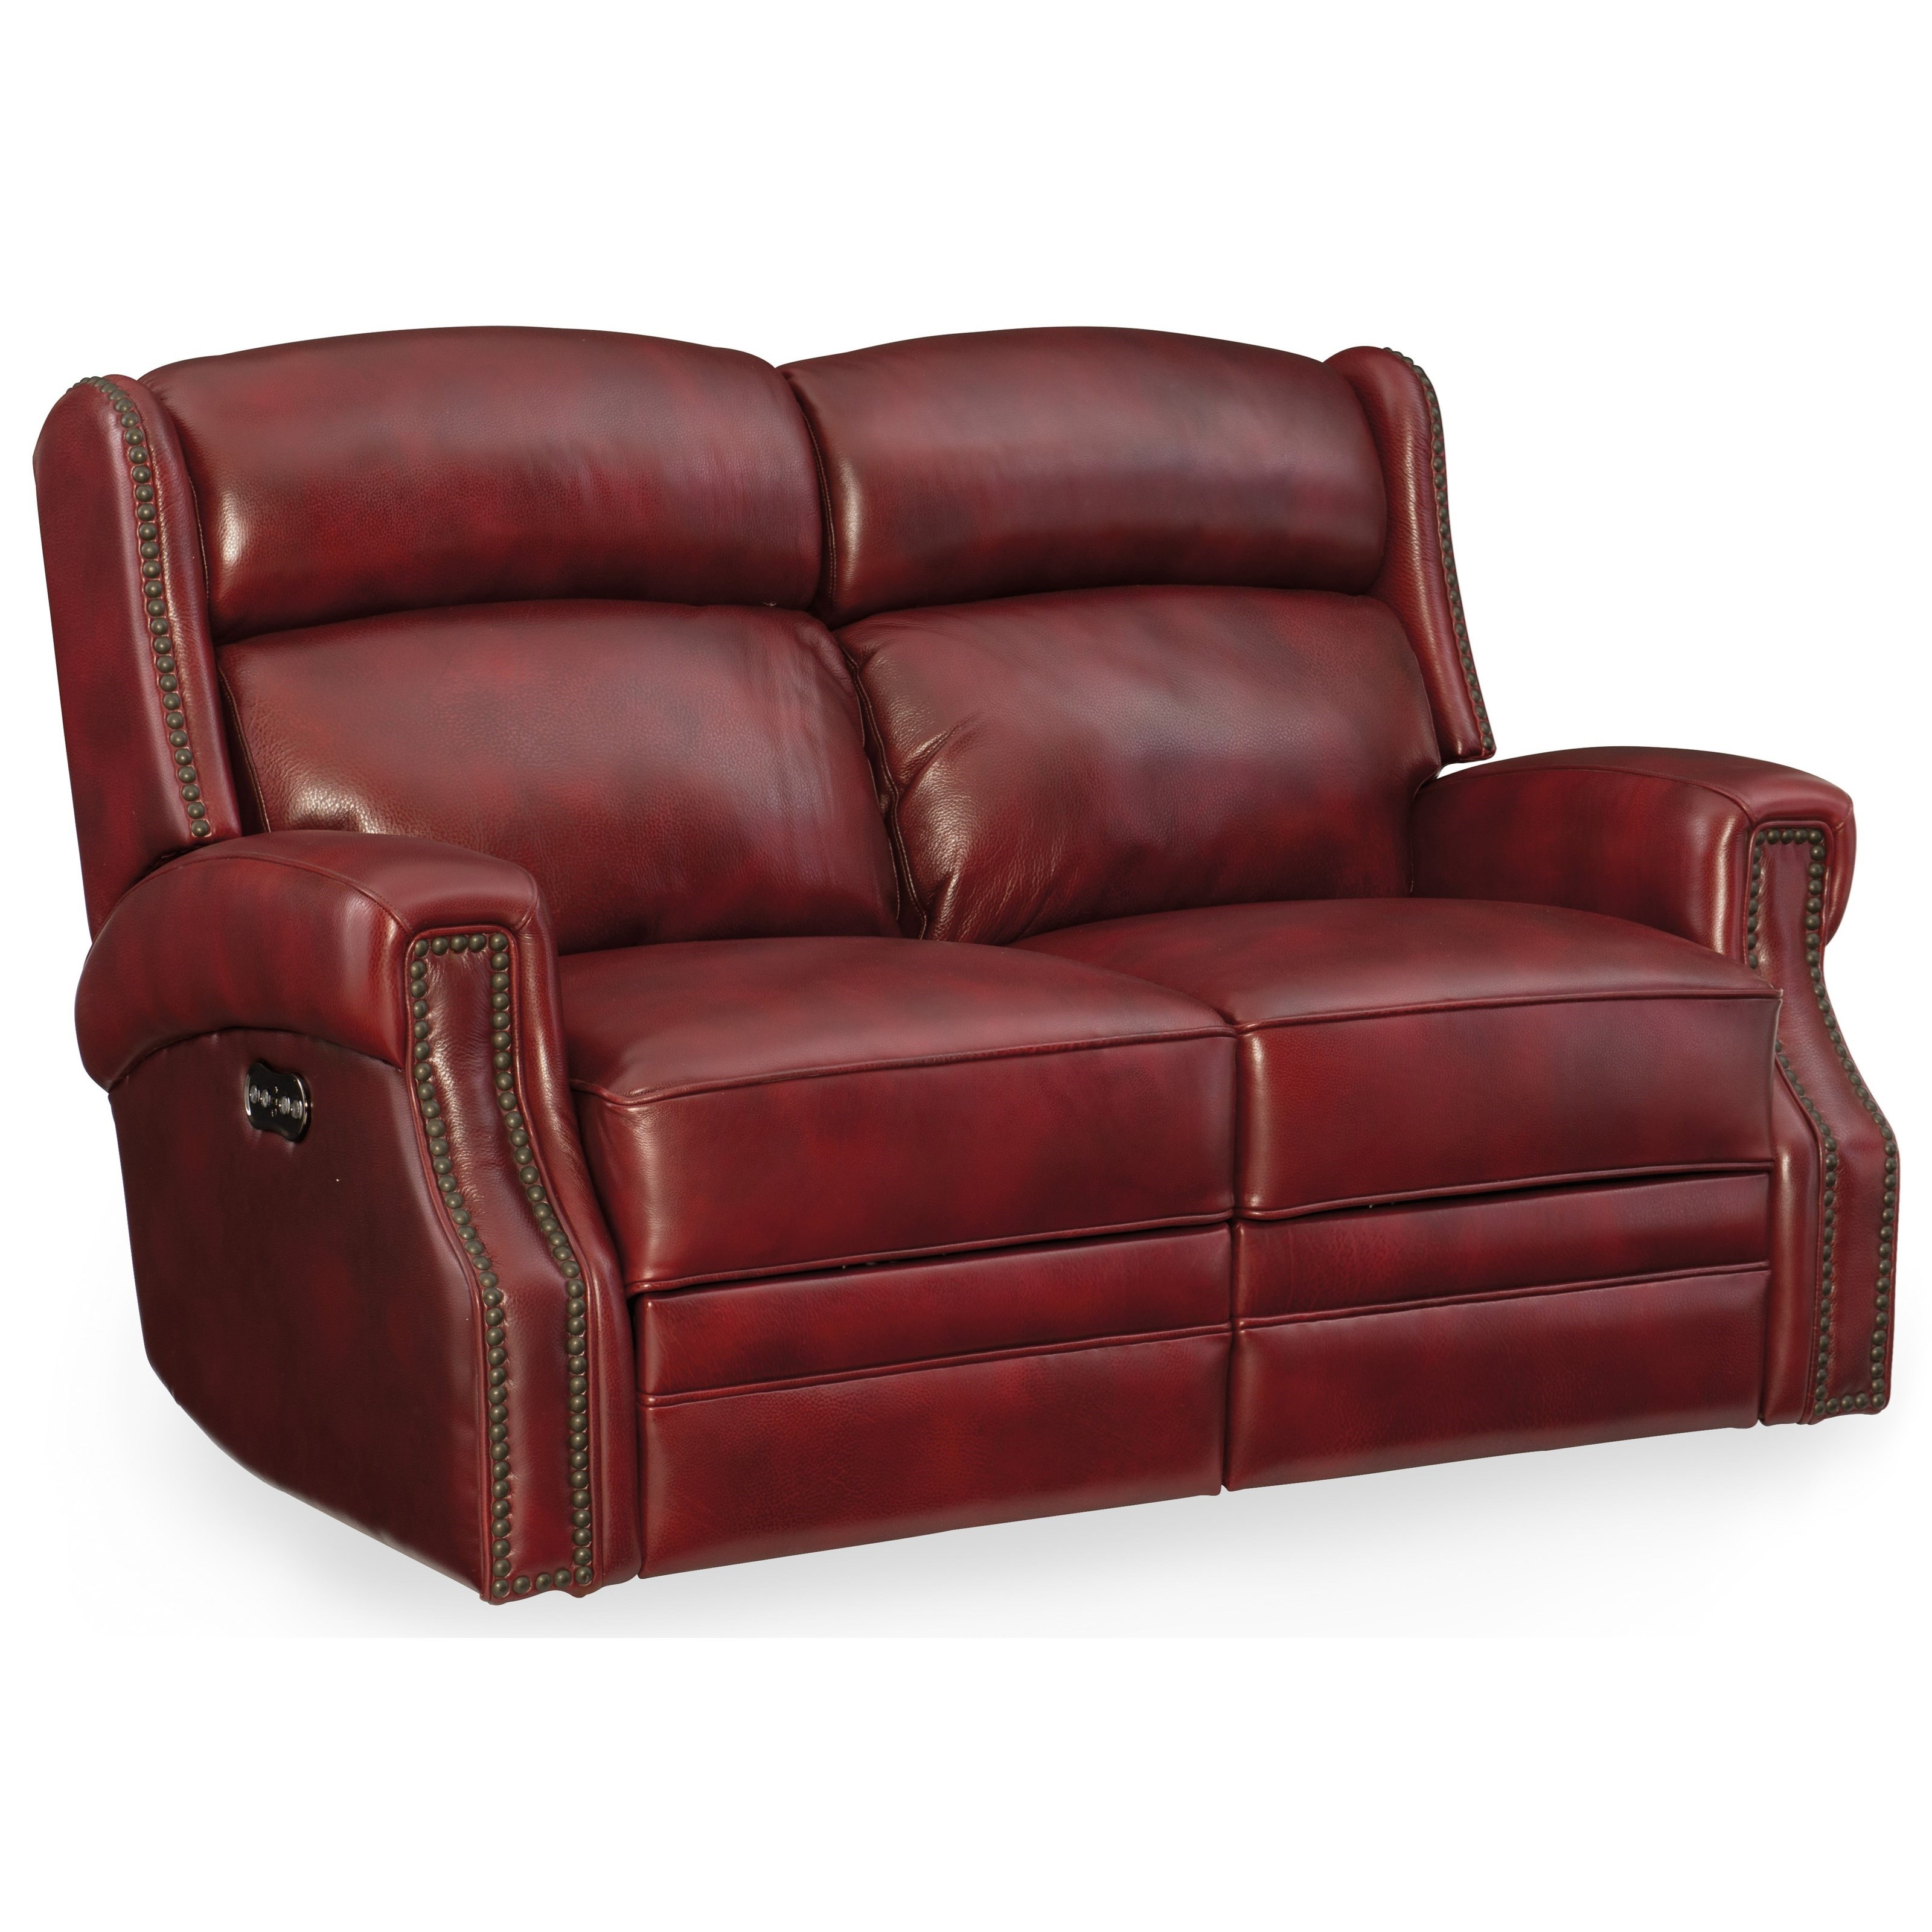 Carlisle Power Motion Loveseat with Power Headrest by Hooker Furniture at Miller Waldrop Furniture and Decor